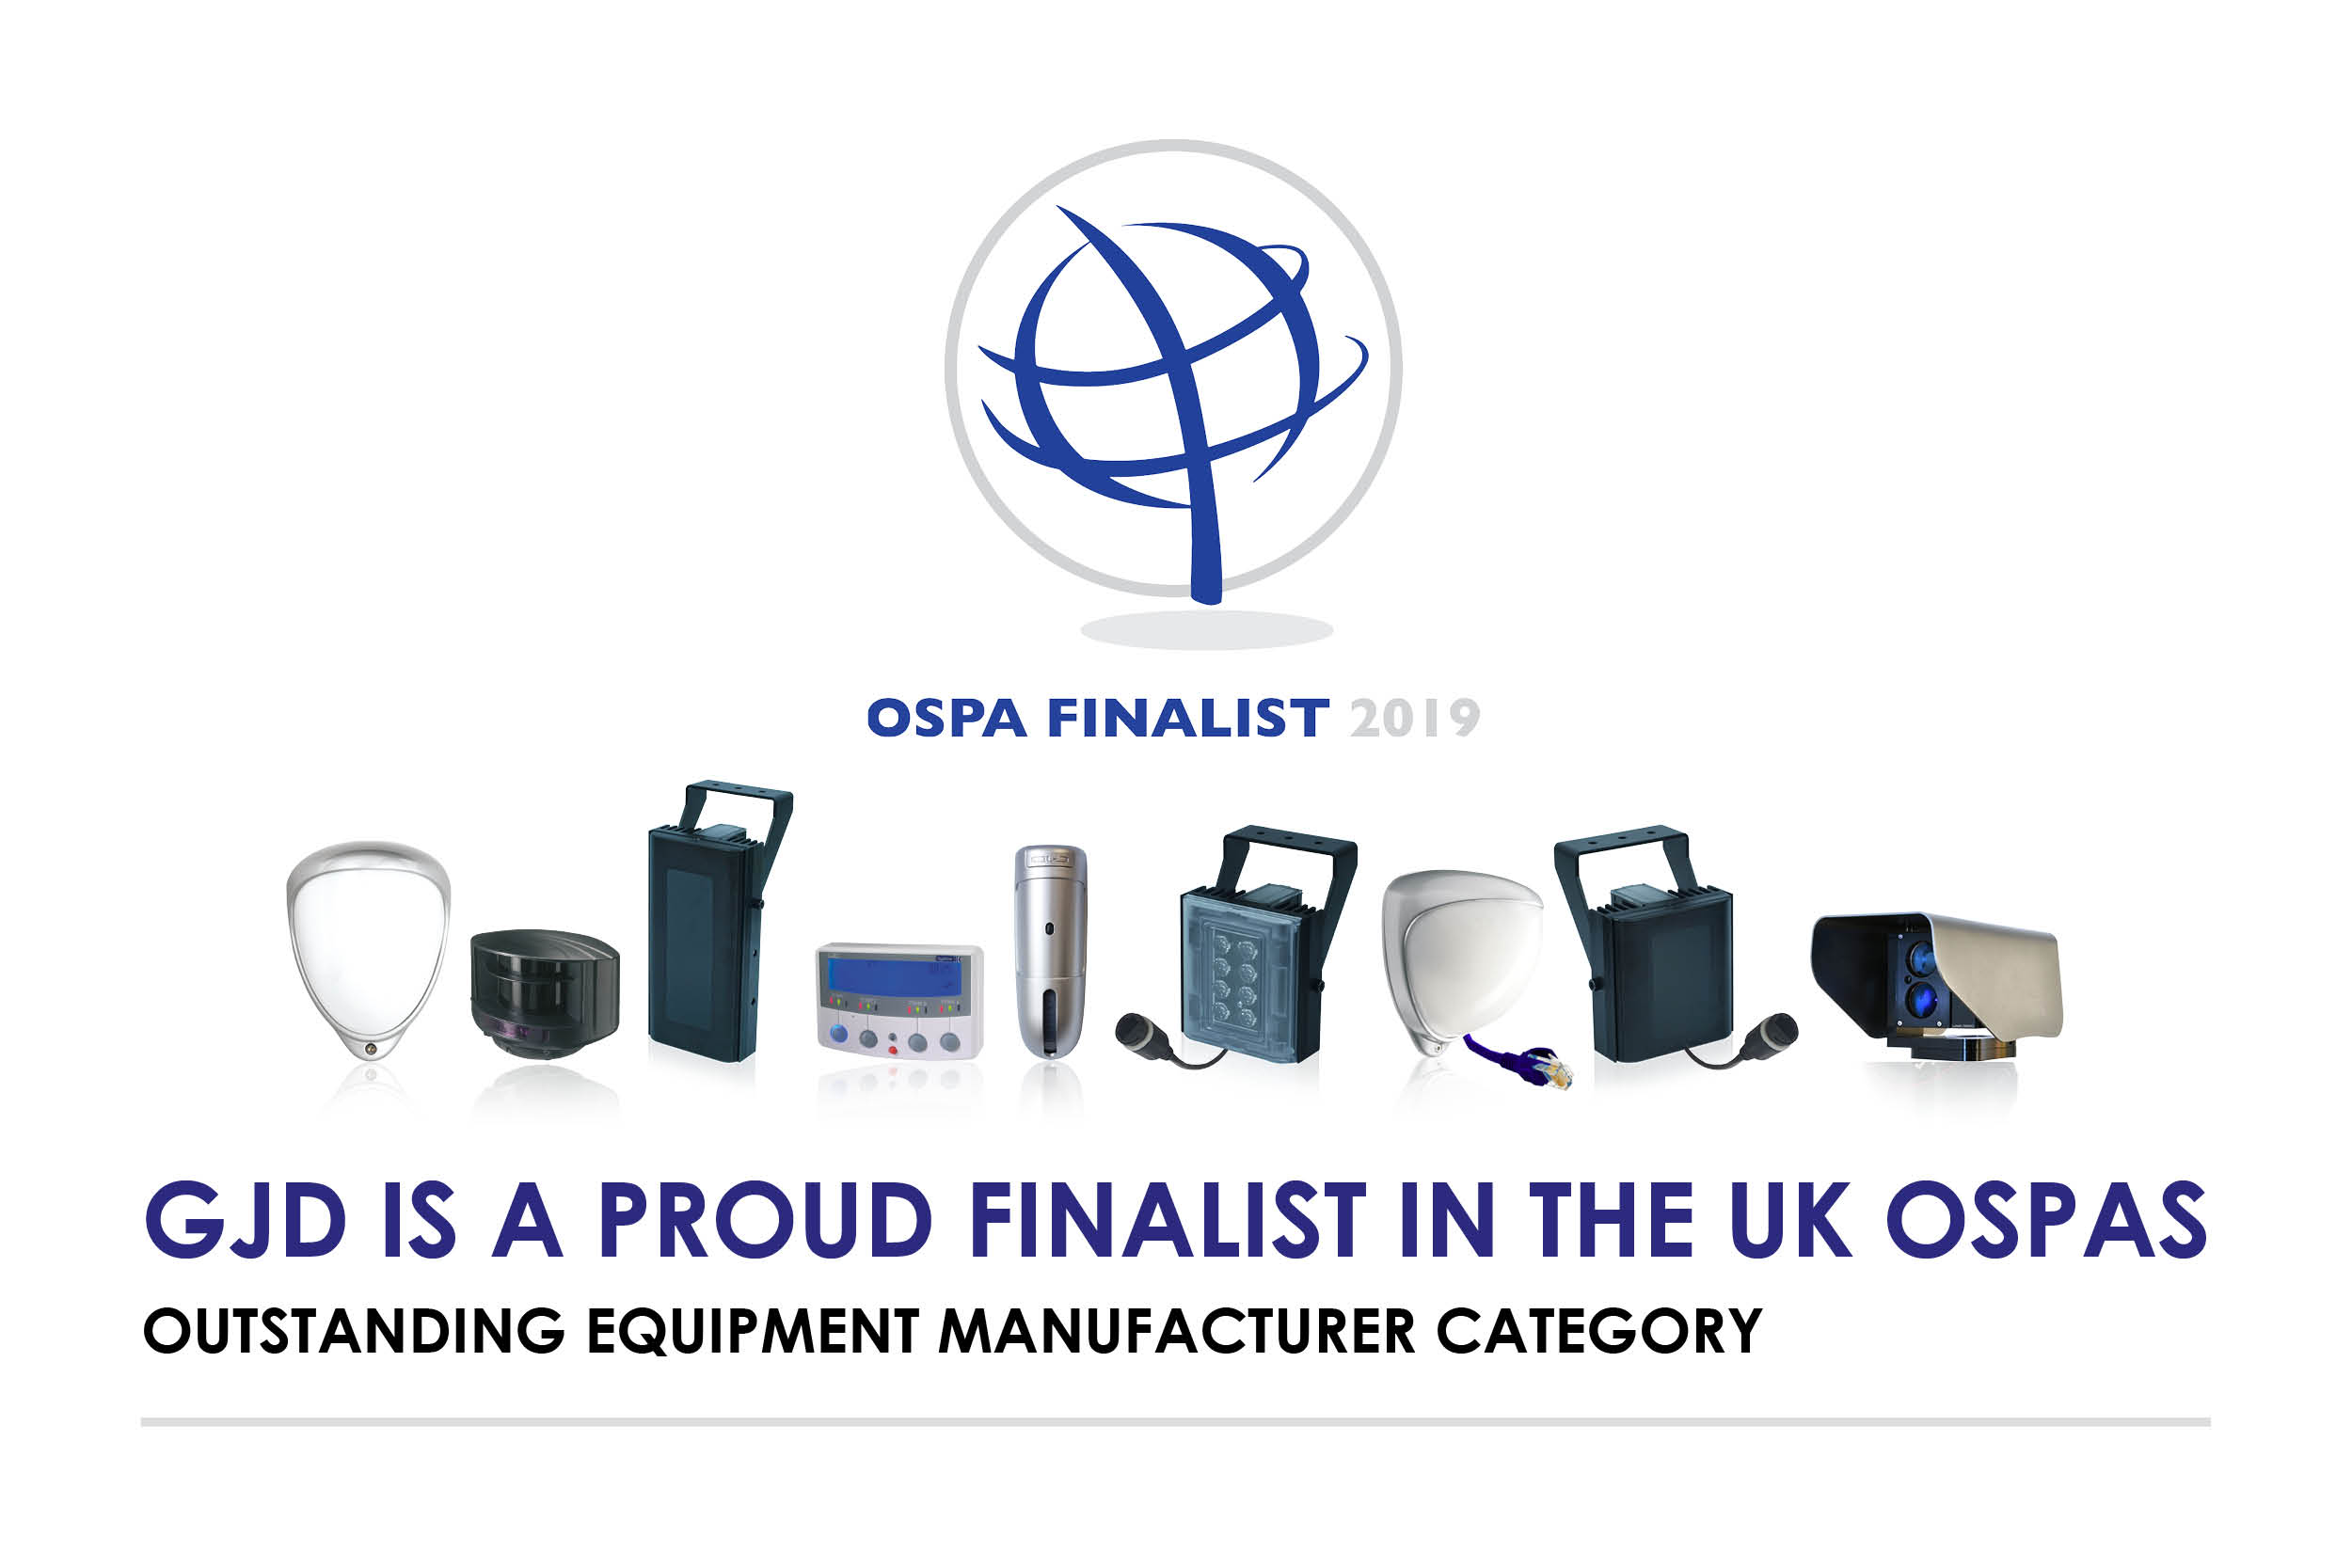 Image: GJD shortlisted for UK OSPA 2019 Award